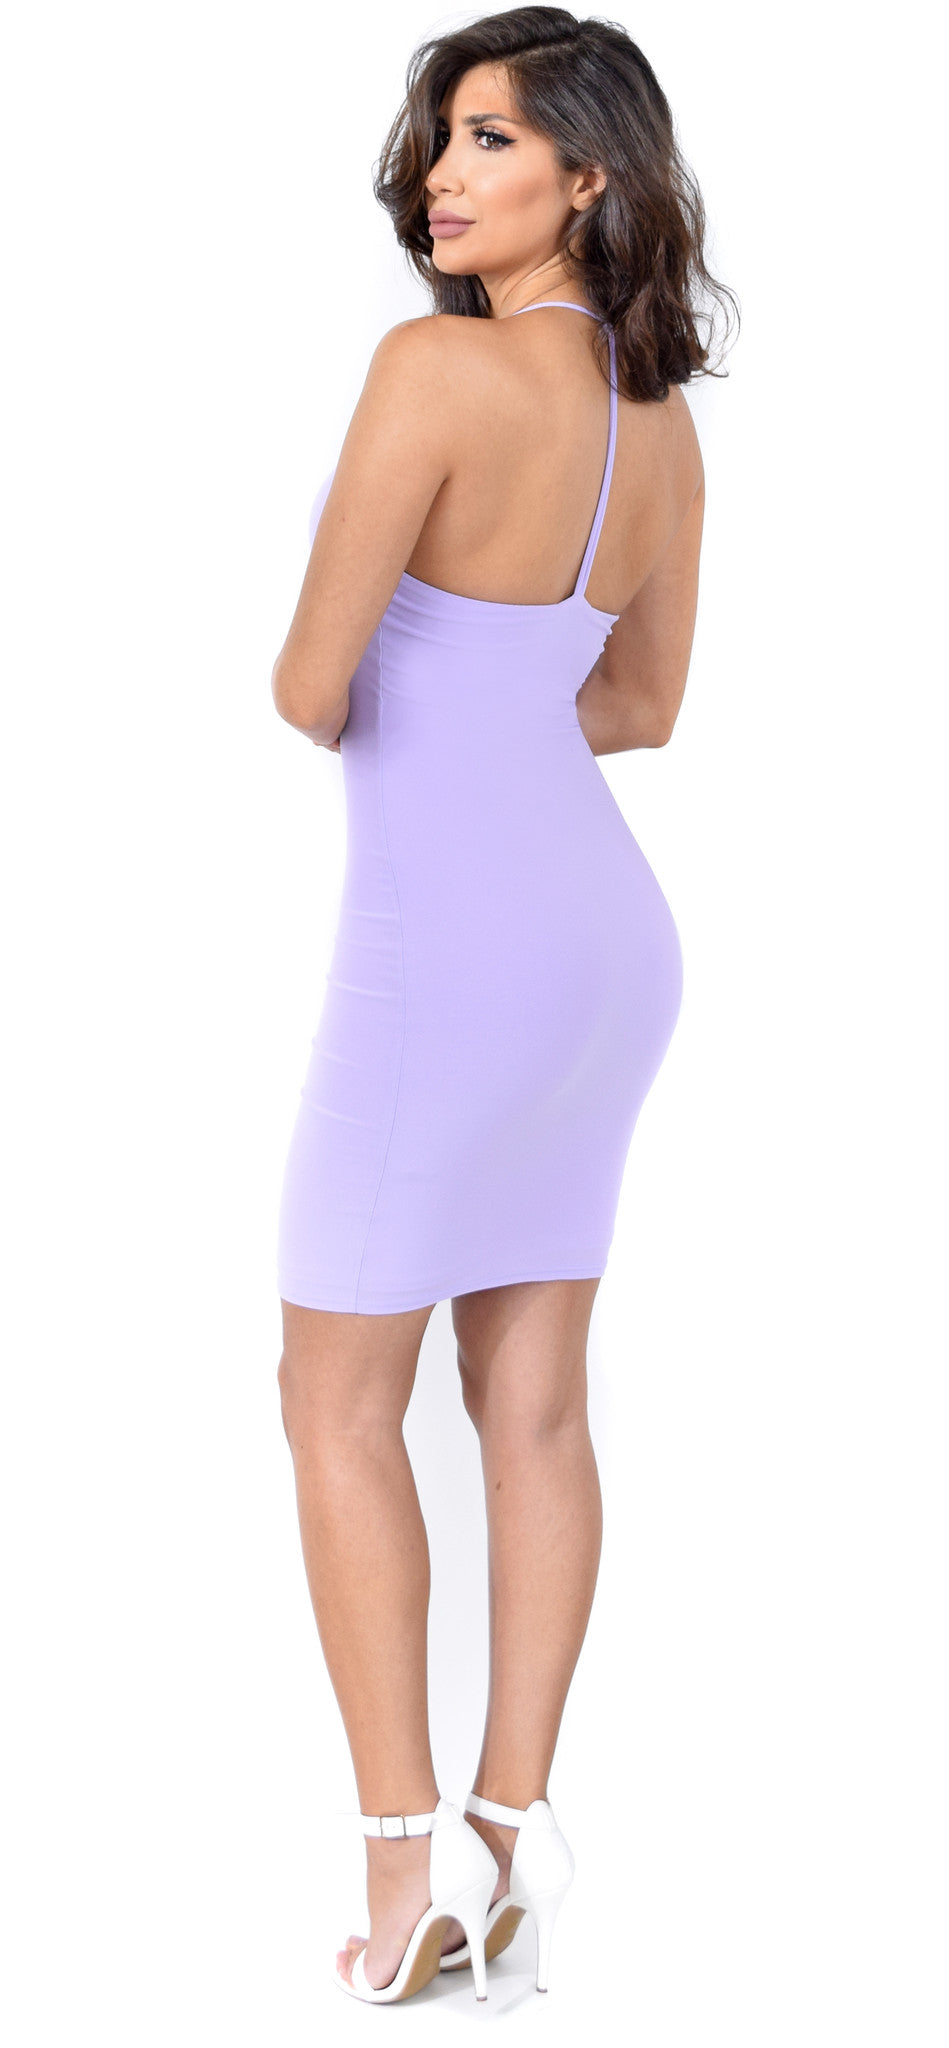 Rosa Lavender T Back Dress - Emprada